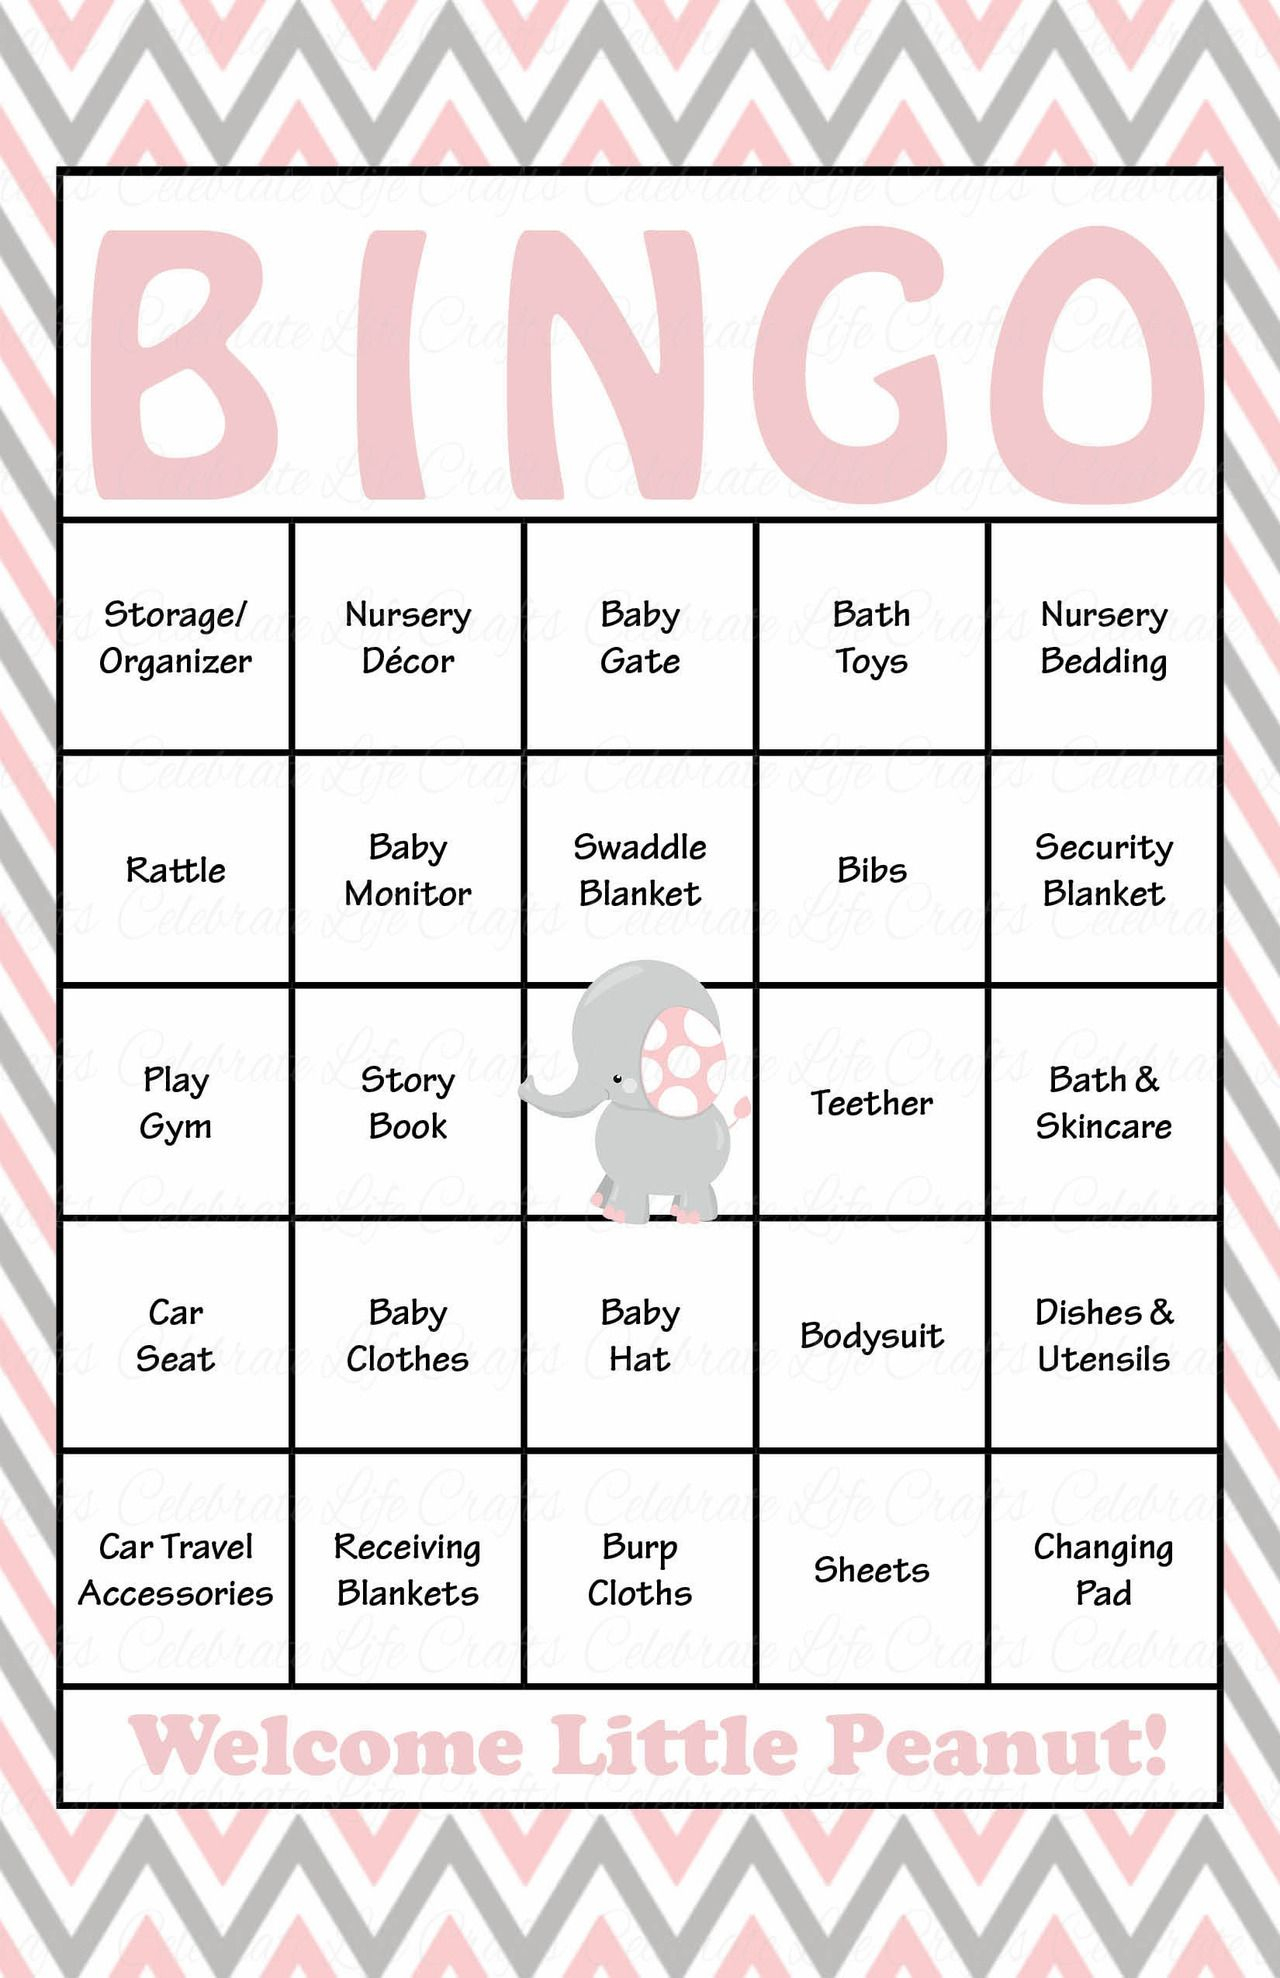 Elephant Baby Bingo Cards - Printable Download - Prefilled - Baby - Free Printable Baby Shower Bingo Cards Pdf